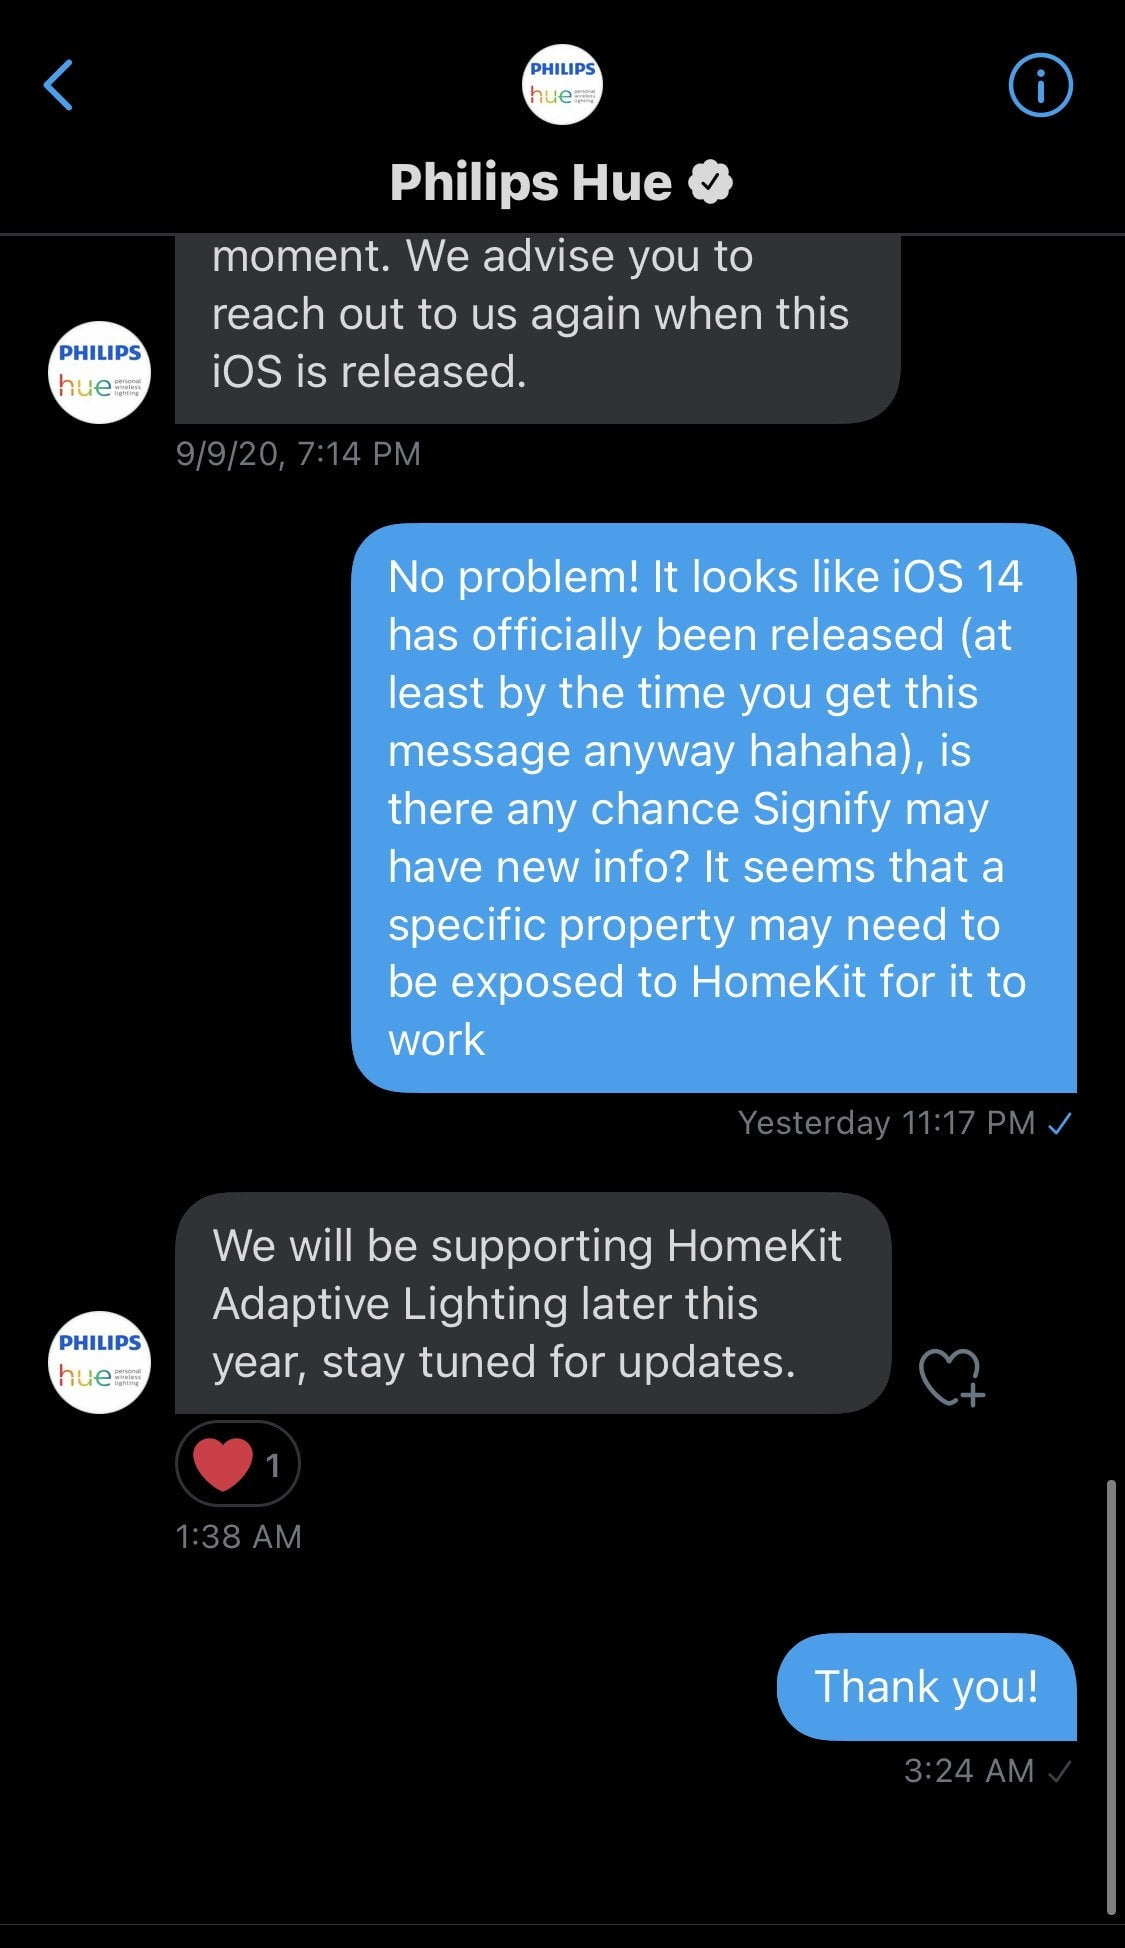 Hue Supporting adaptive lighting Later this year